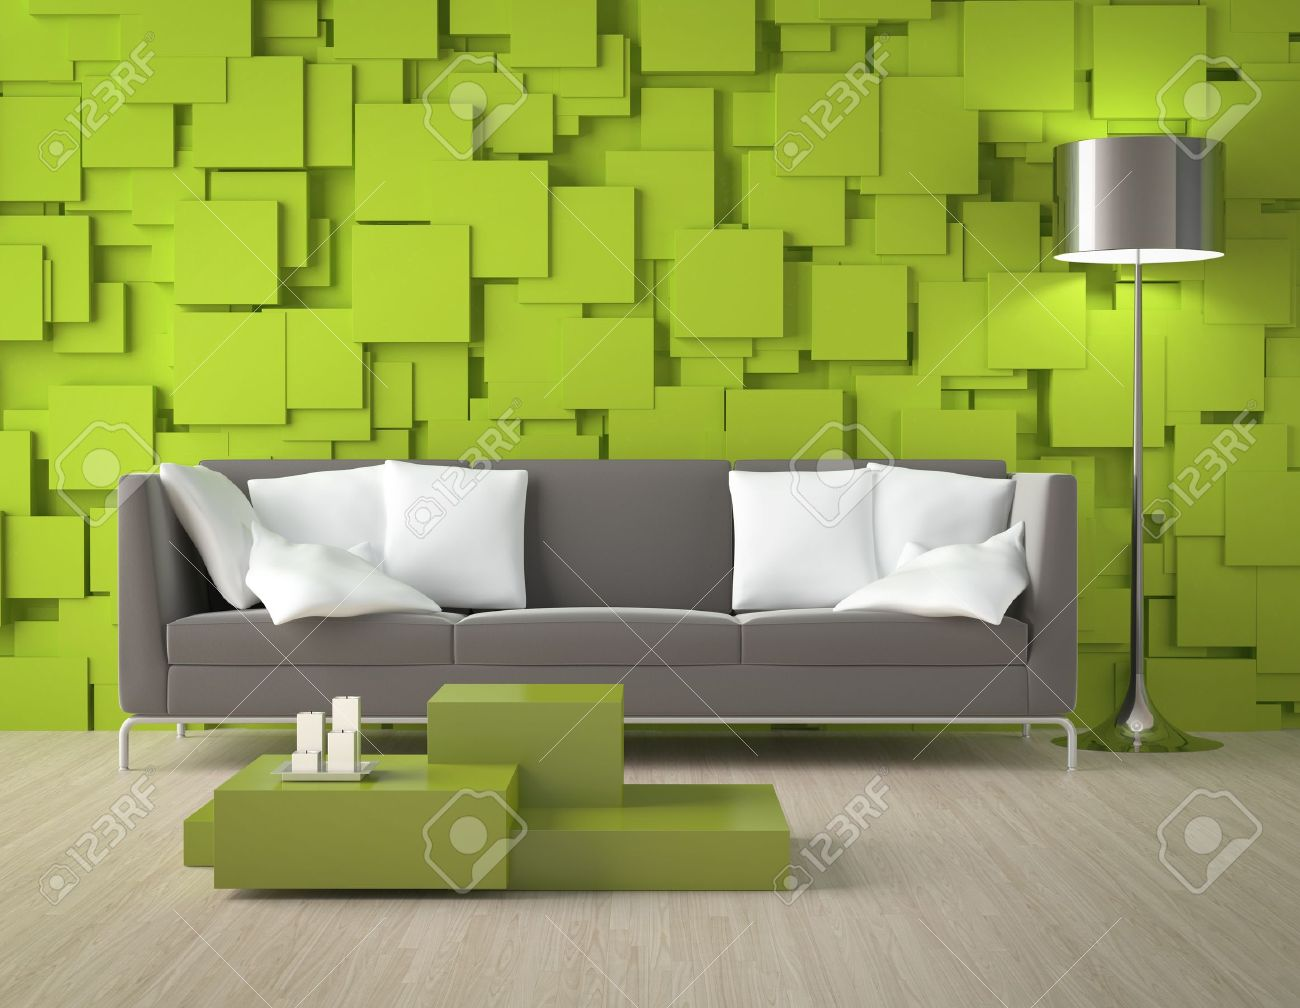 Living Room Modern Wall Designs interior design of a modern room with green wall made blocks and furniture stock